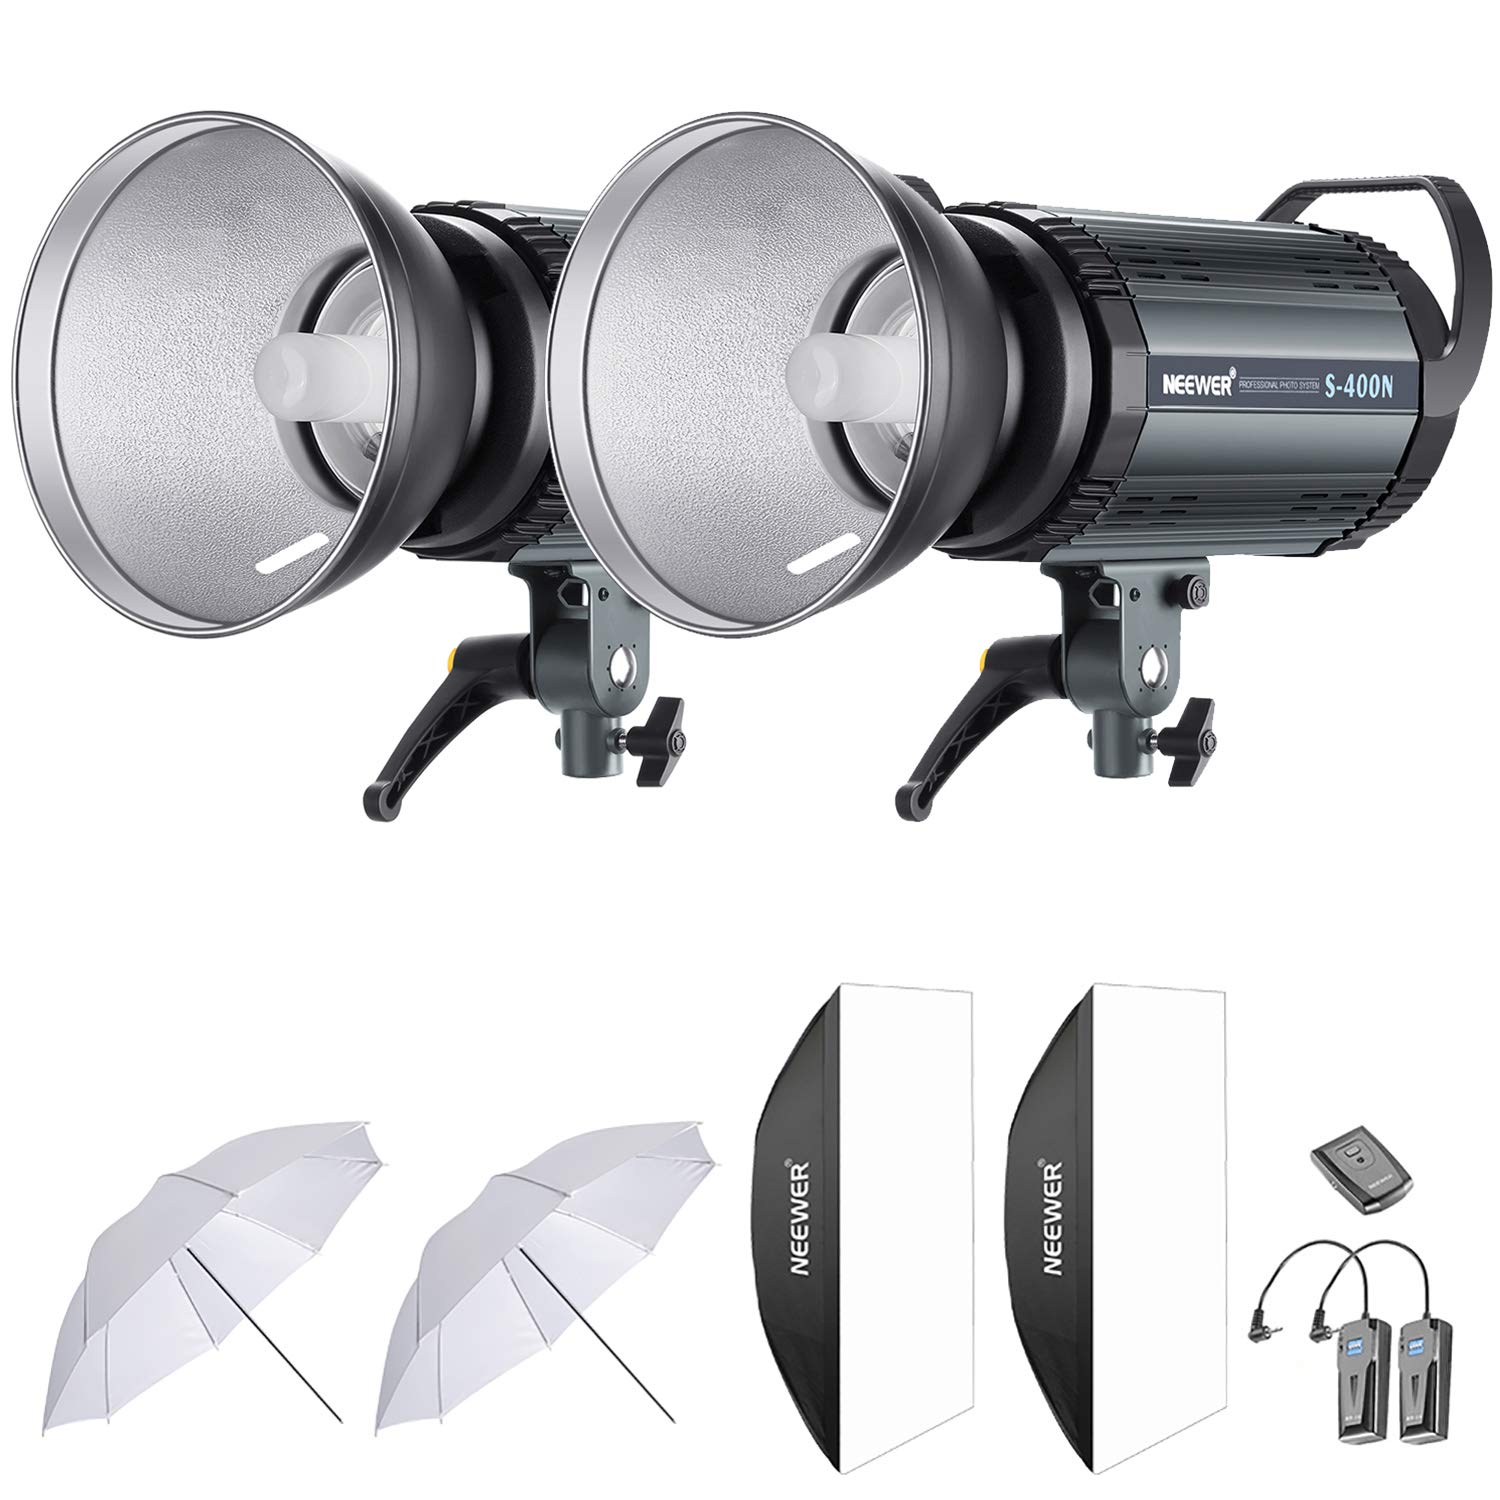 Neewer 800W Studio Strobe Flash Photography Lighting Kit:(2)400W Monolight,(2) Reflector Diffuser,(2) Softbox,(2)33 Inches Umbrella,(1) RT-16 Wireless Trigger for Shooting Bowens Mount(S-400N) by Neewer